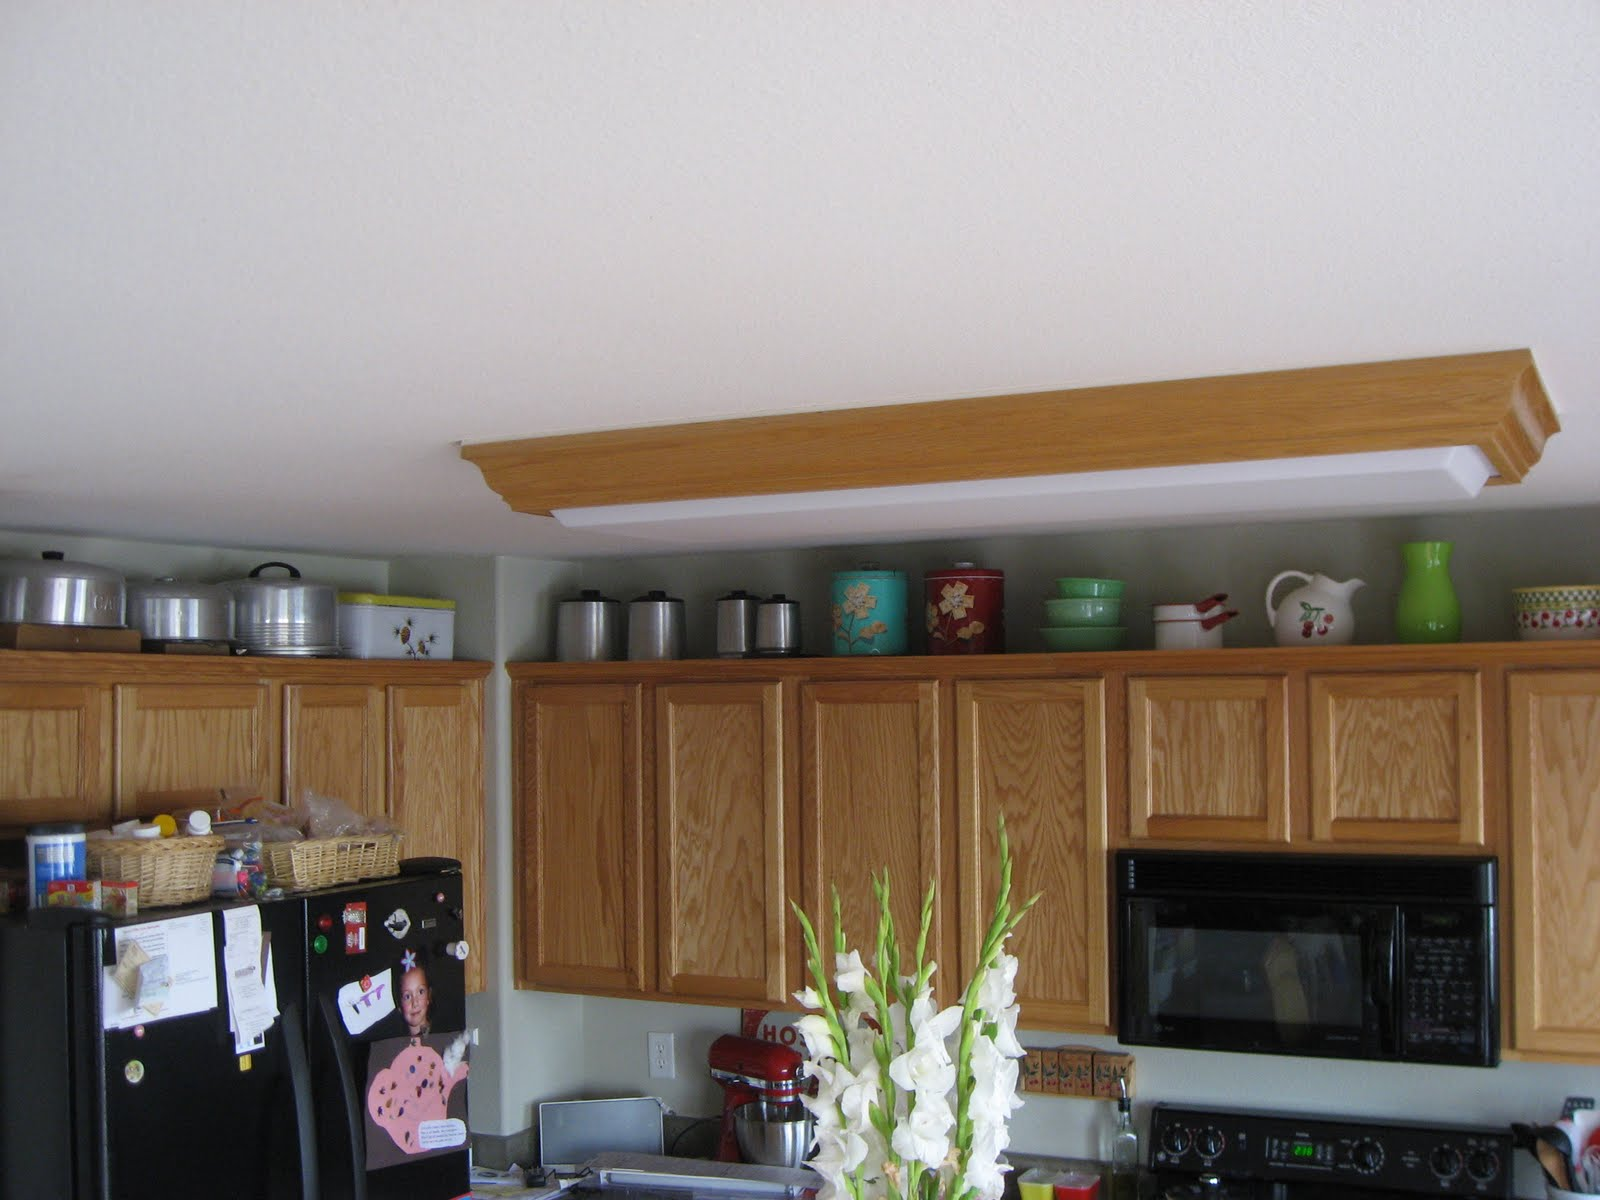 Lady Goats: Decorating Above Kitchen Cabinets